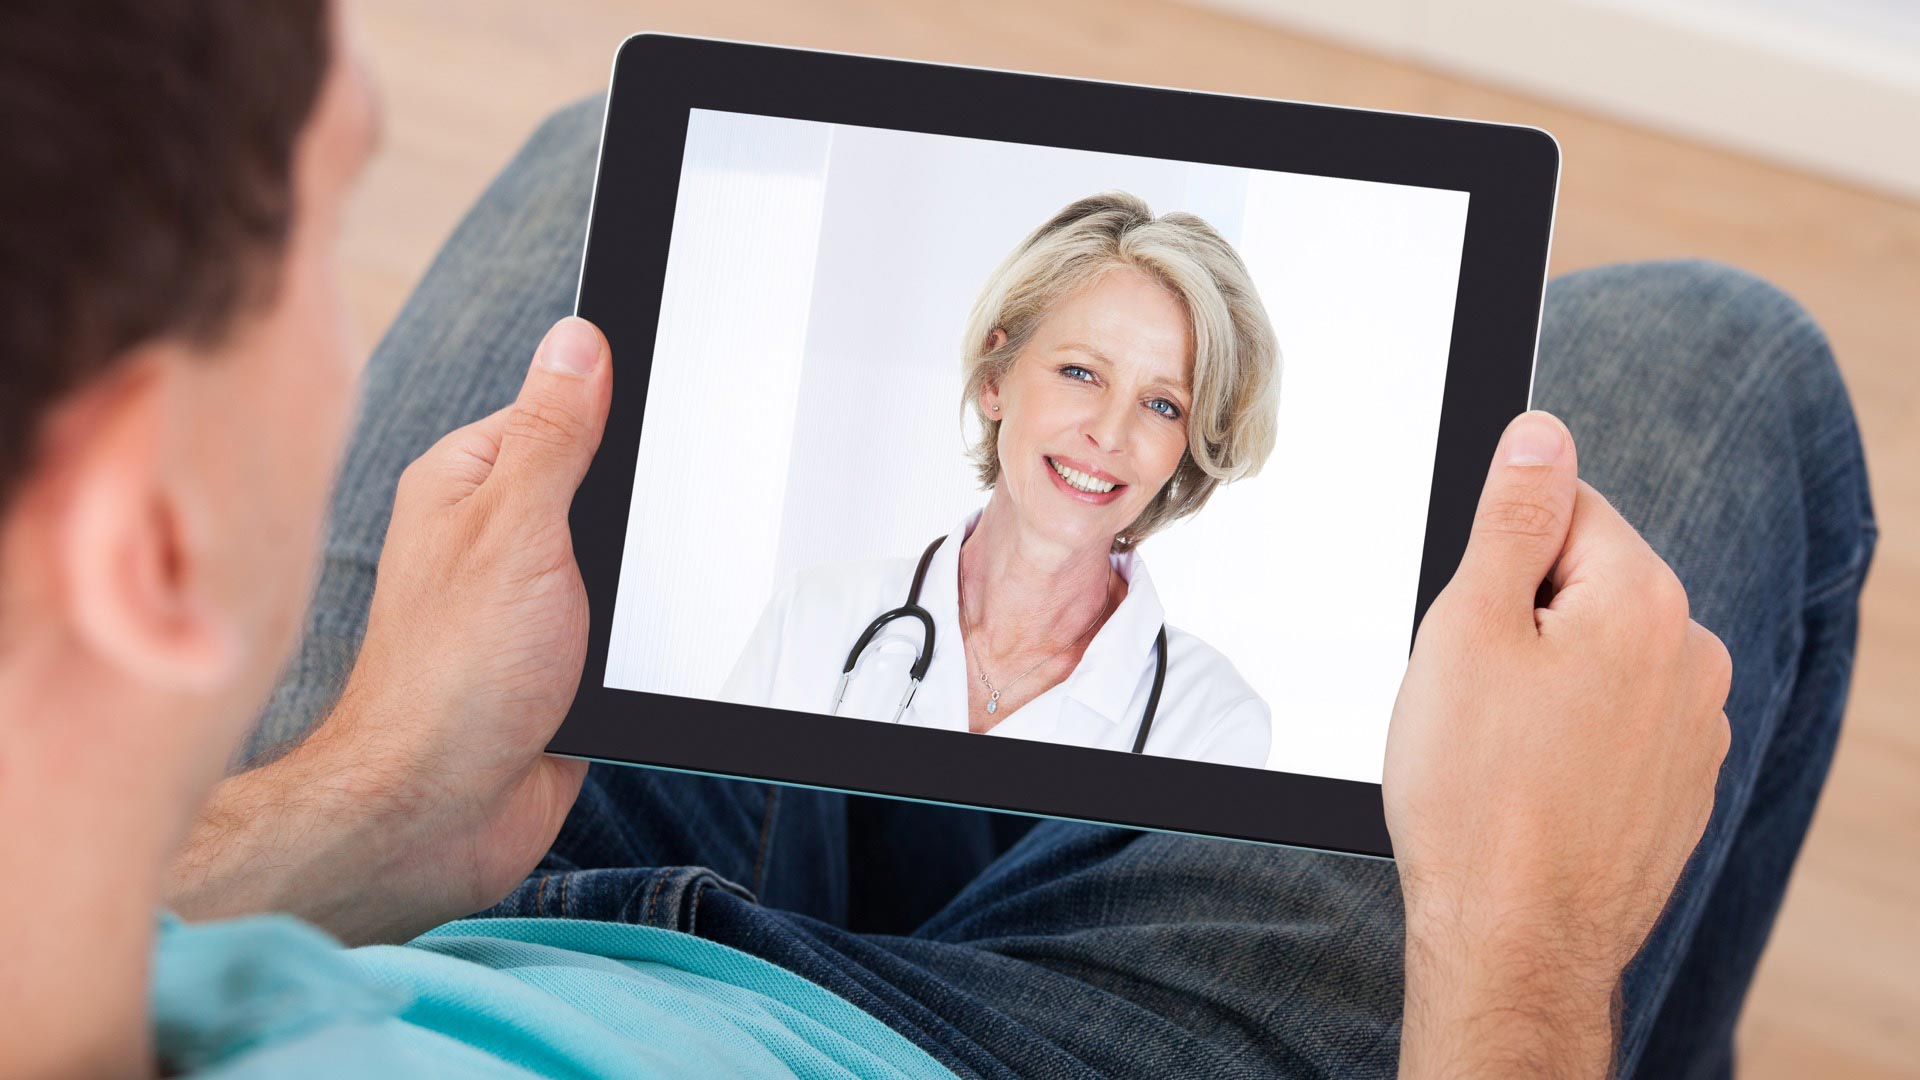 The Future of Healthcare is Virtual